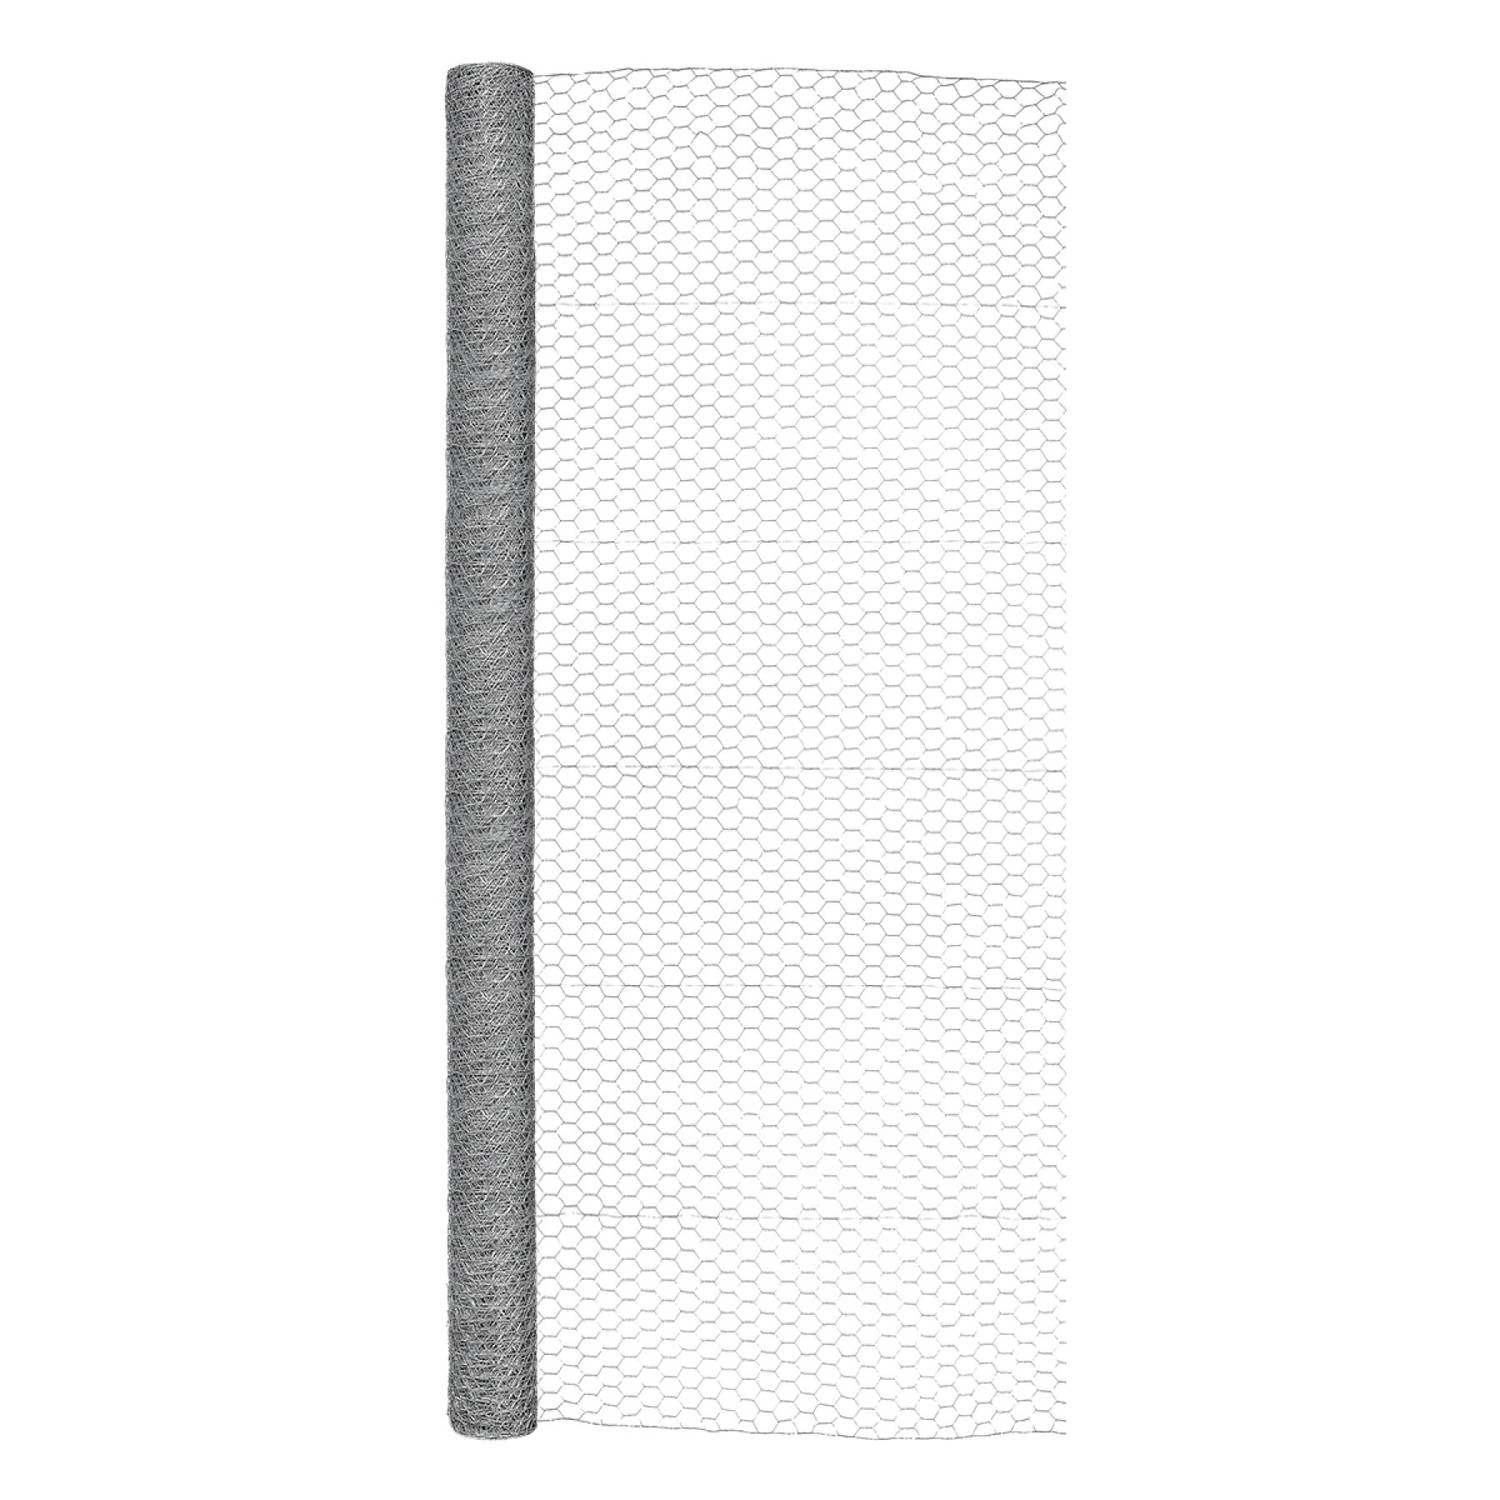 Garden Craft 72 in. H x 50 ft. L 20 Ga. Silver Poultry Netting